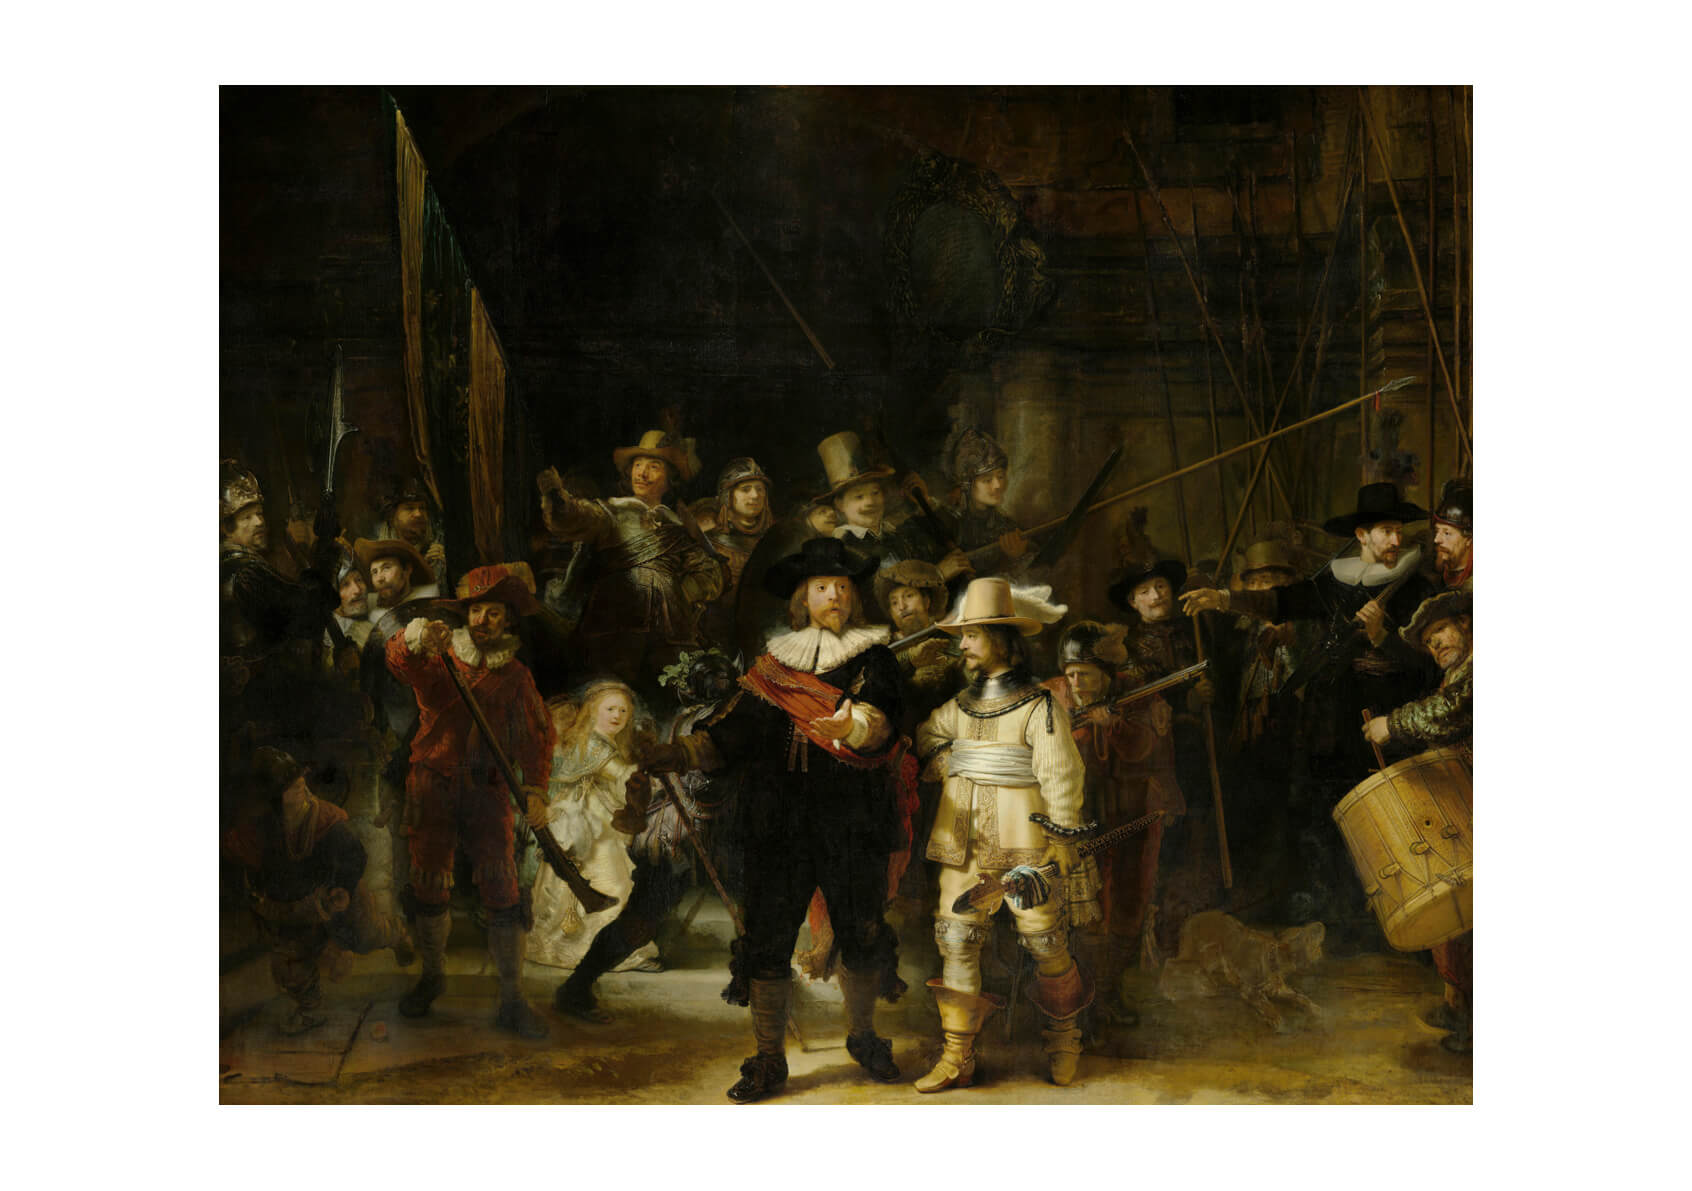 Rembrandt Harmenszoon van Rijn - The Nightwatch